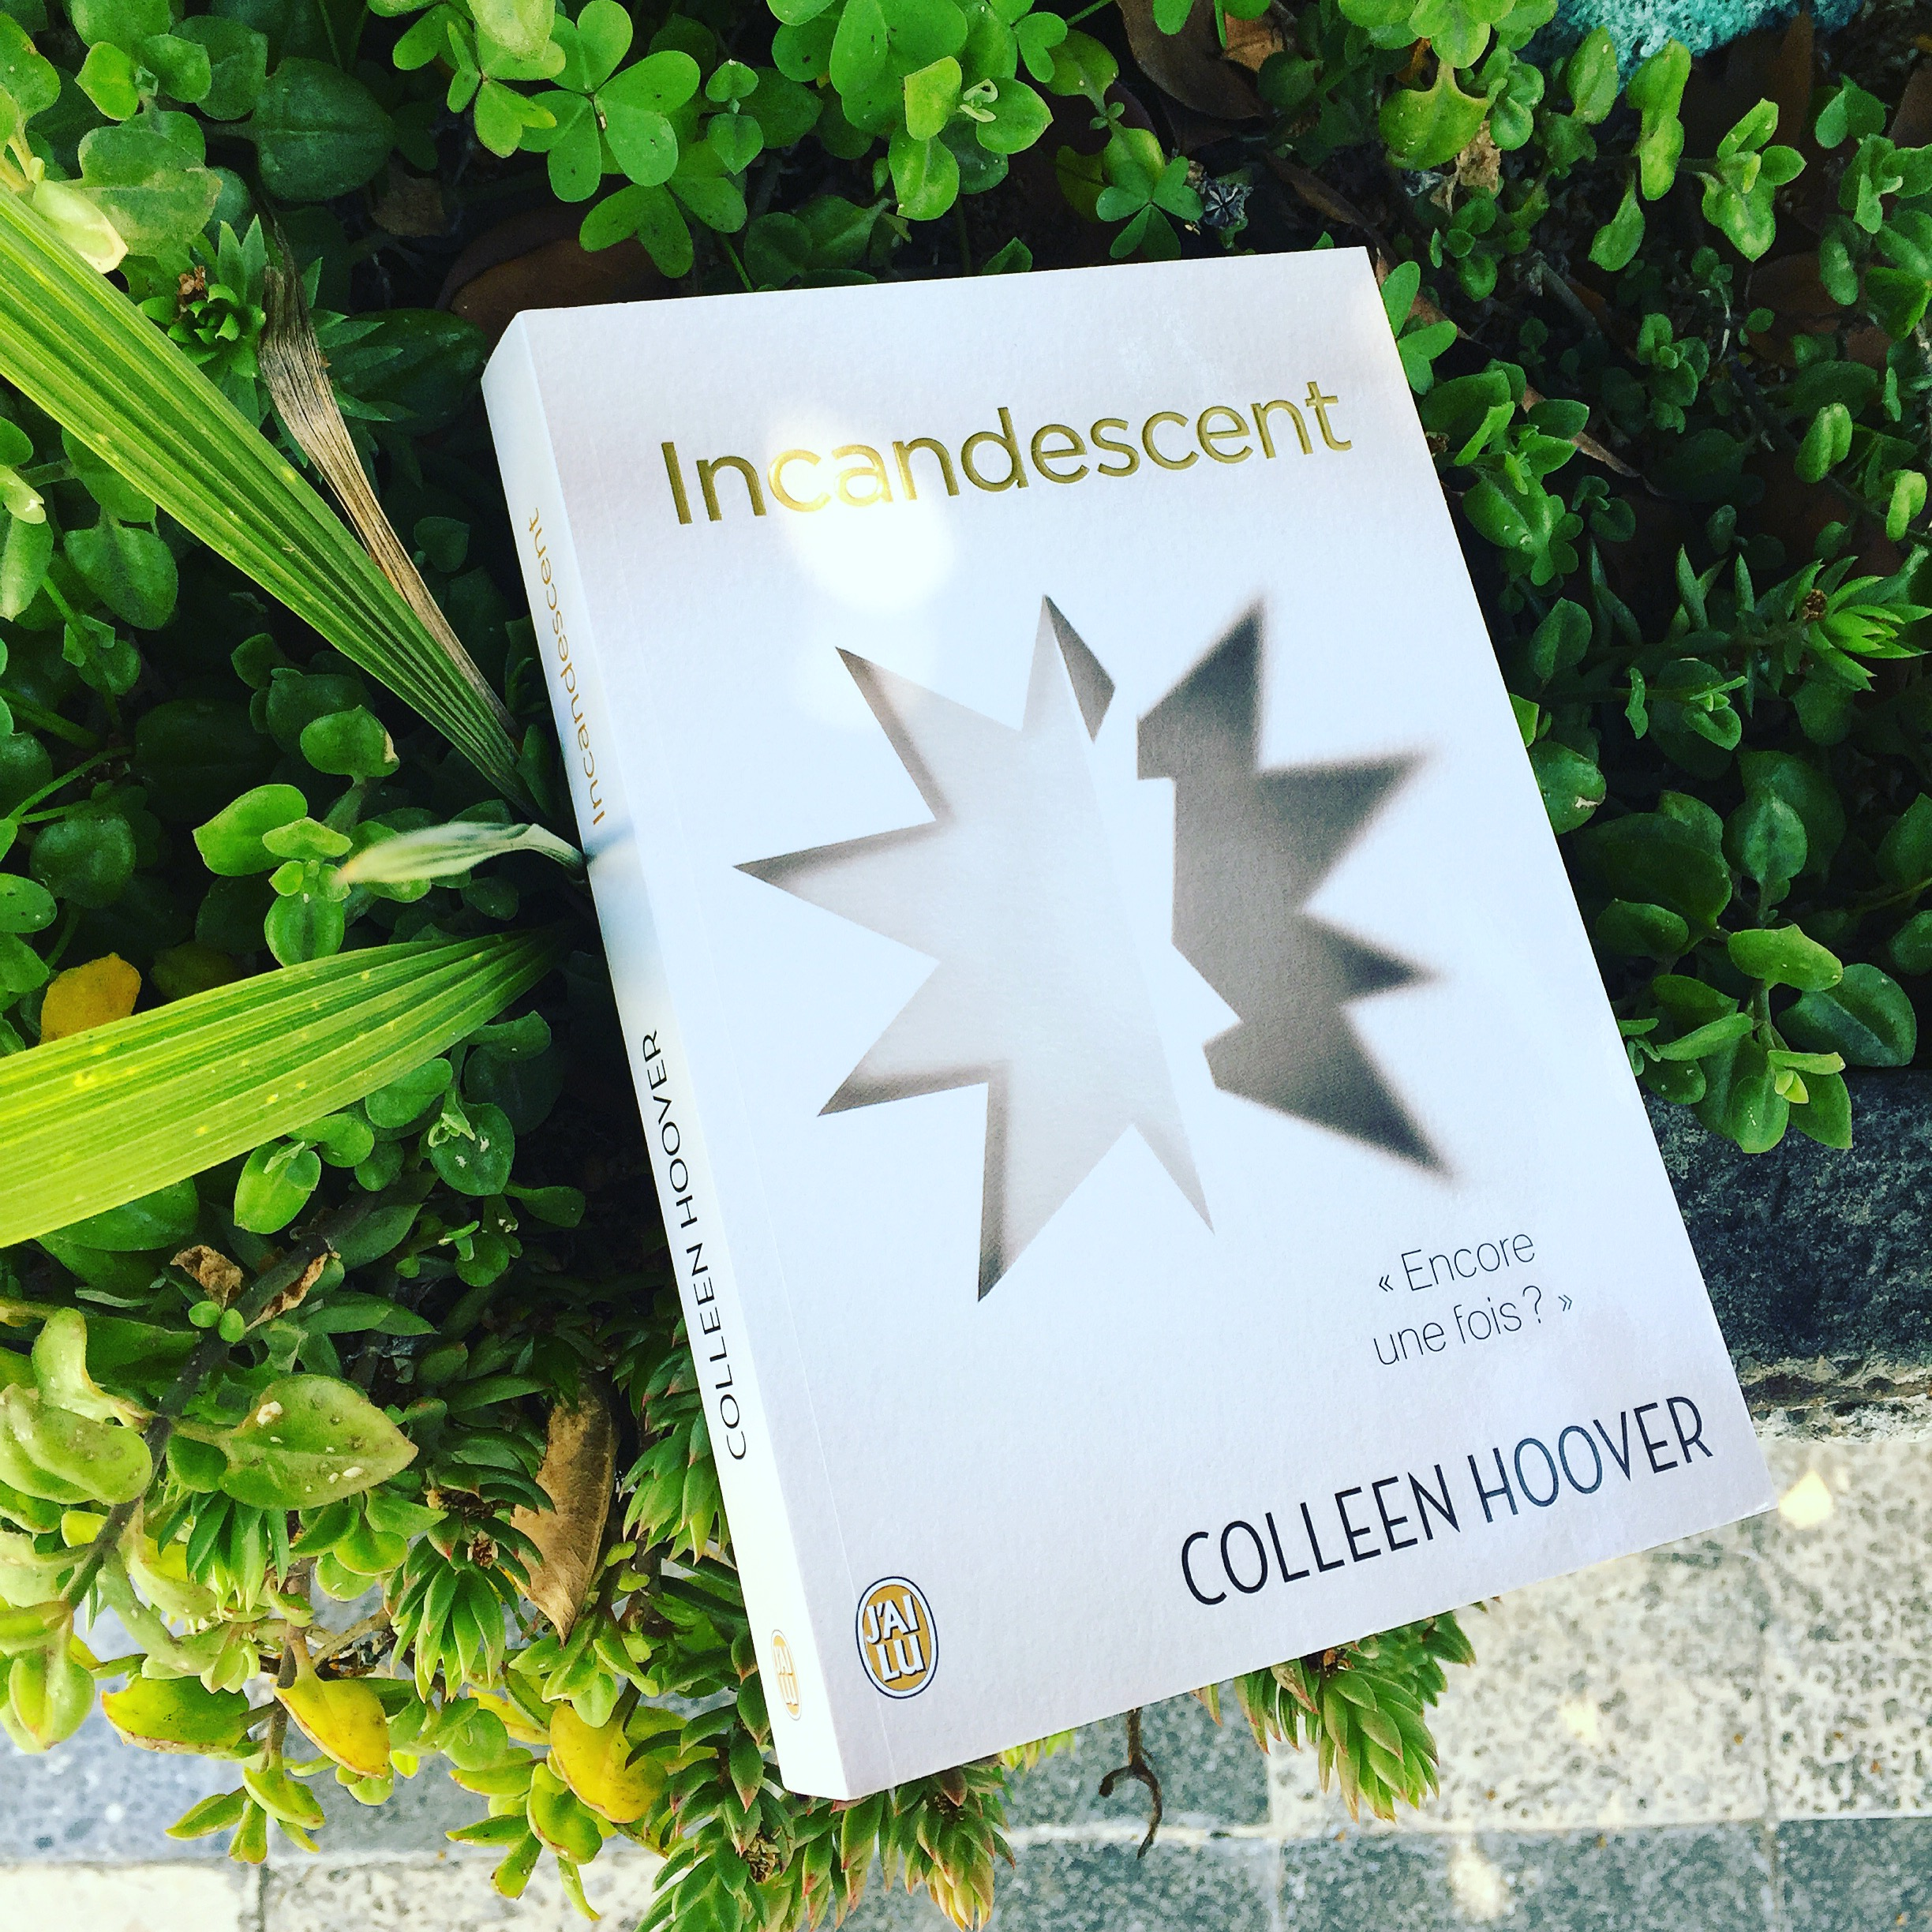 Incandescent Colleen Hoover - Aliastasia